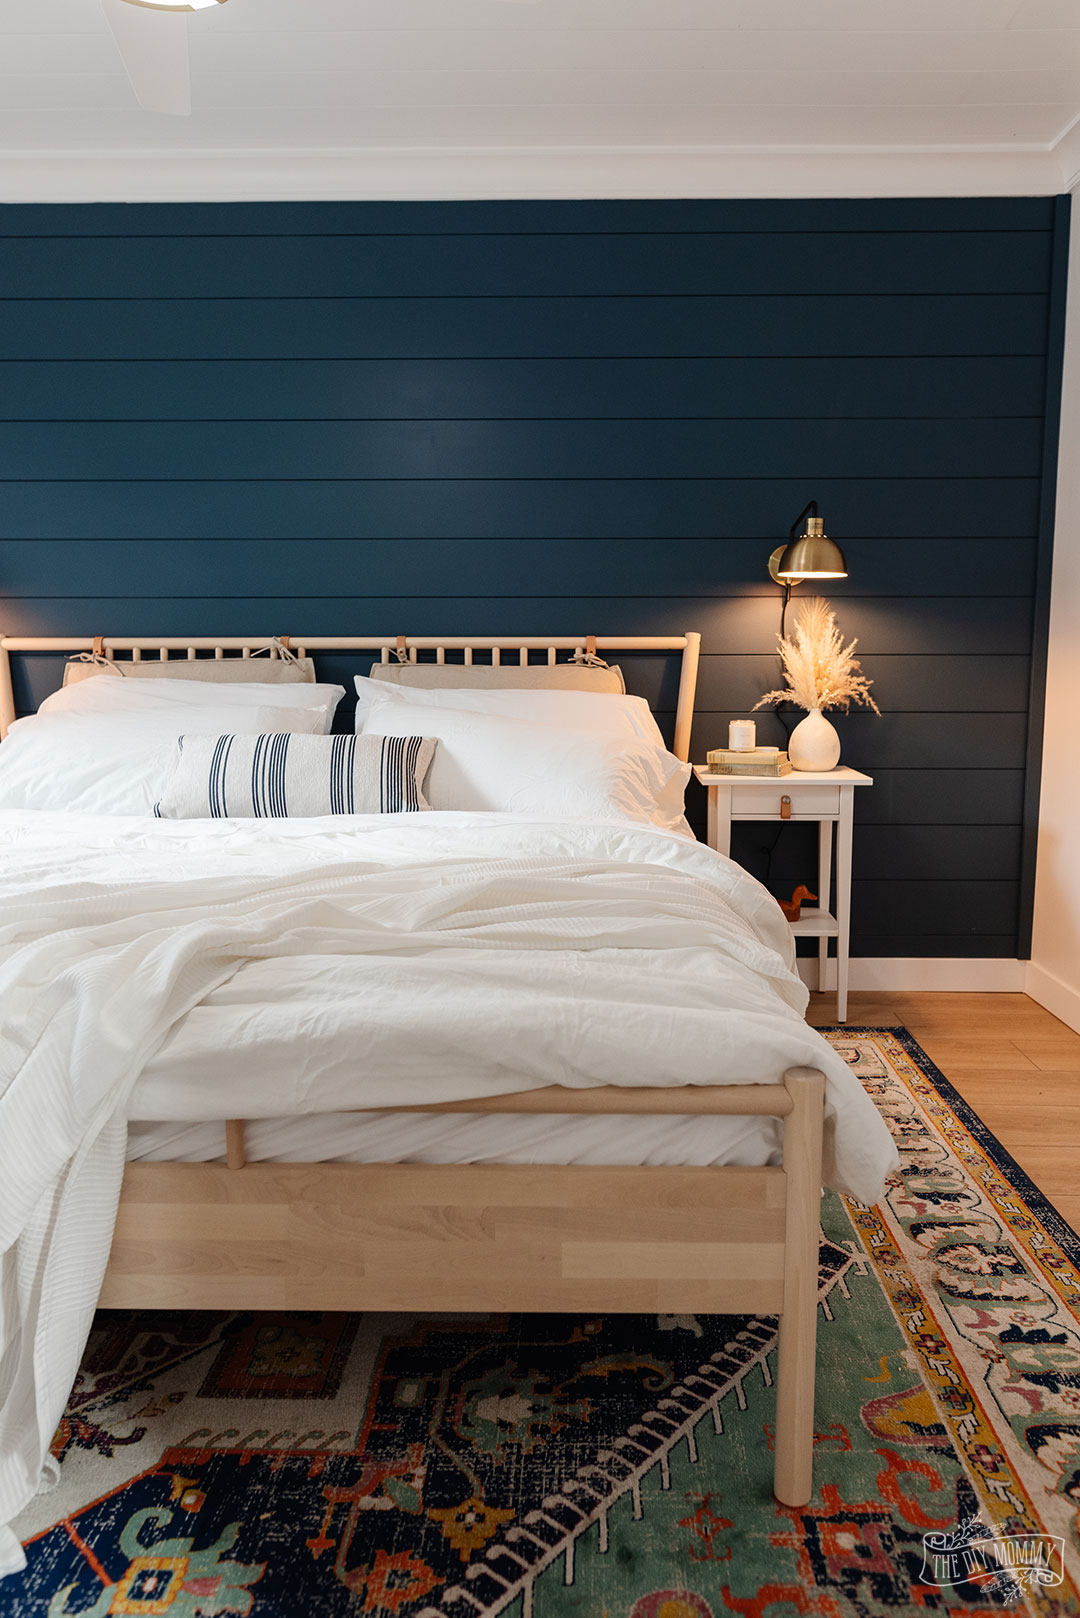 Modern coastal bedroom makeover with deep blue shiplap wall, vinyl plank flooring, IKEA furniture, and gold accents